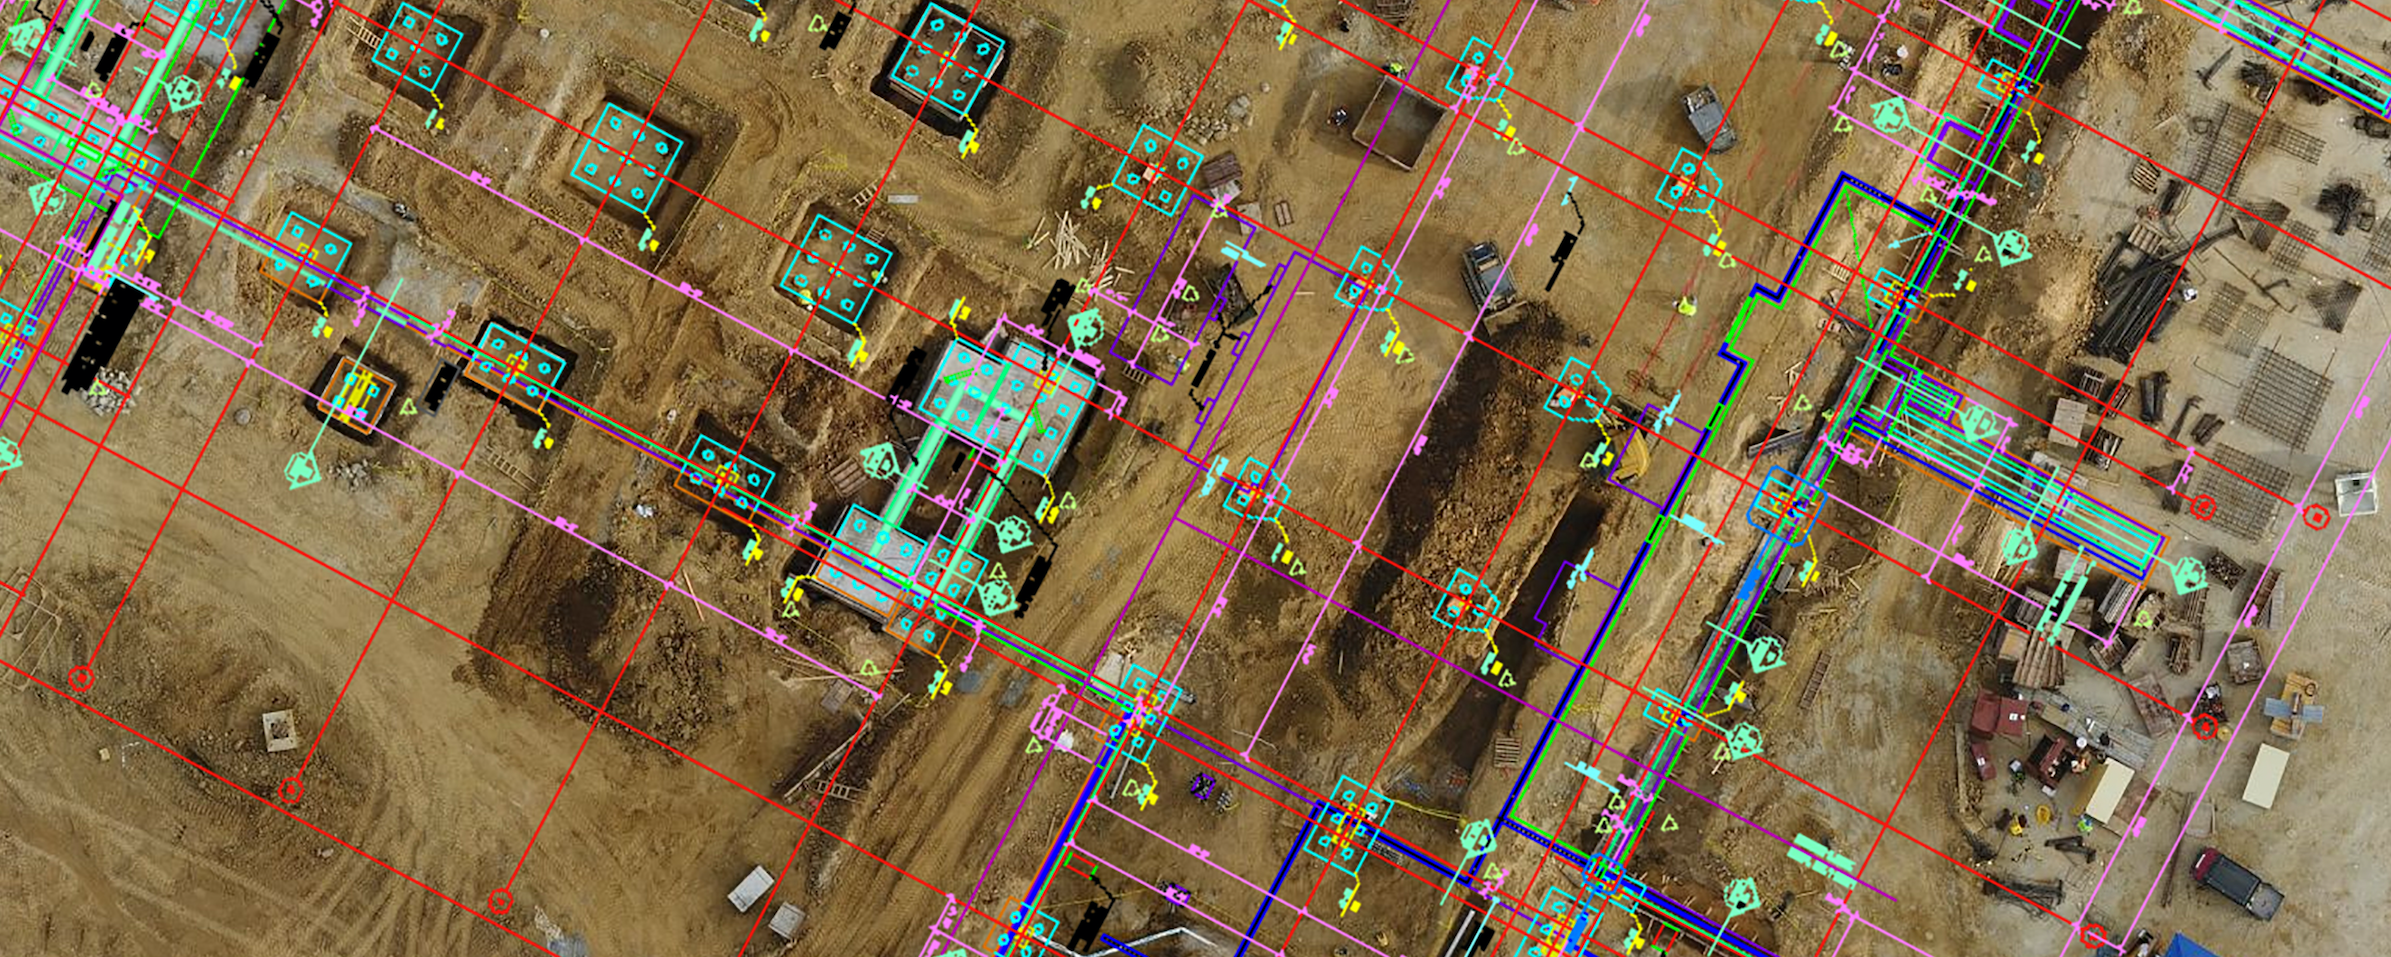 Compare Design Plans And Drone Maps With New Overlay Tool By Dronedeploy Dronedeploy S Blog Medium